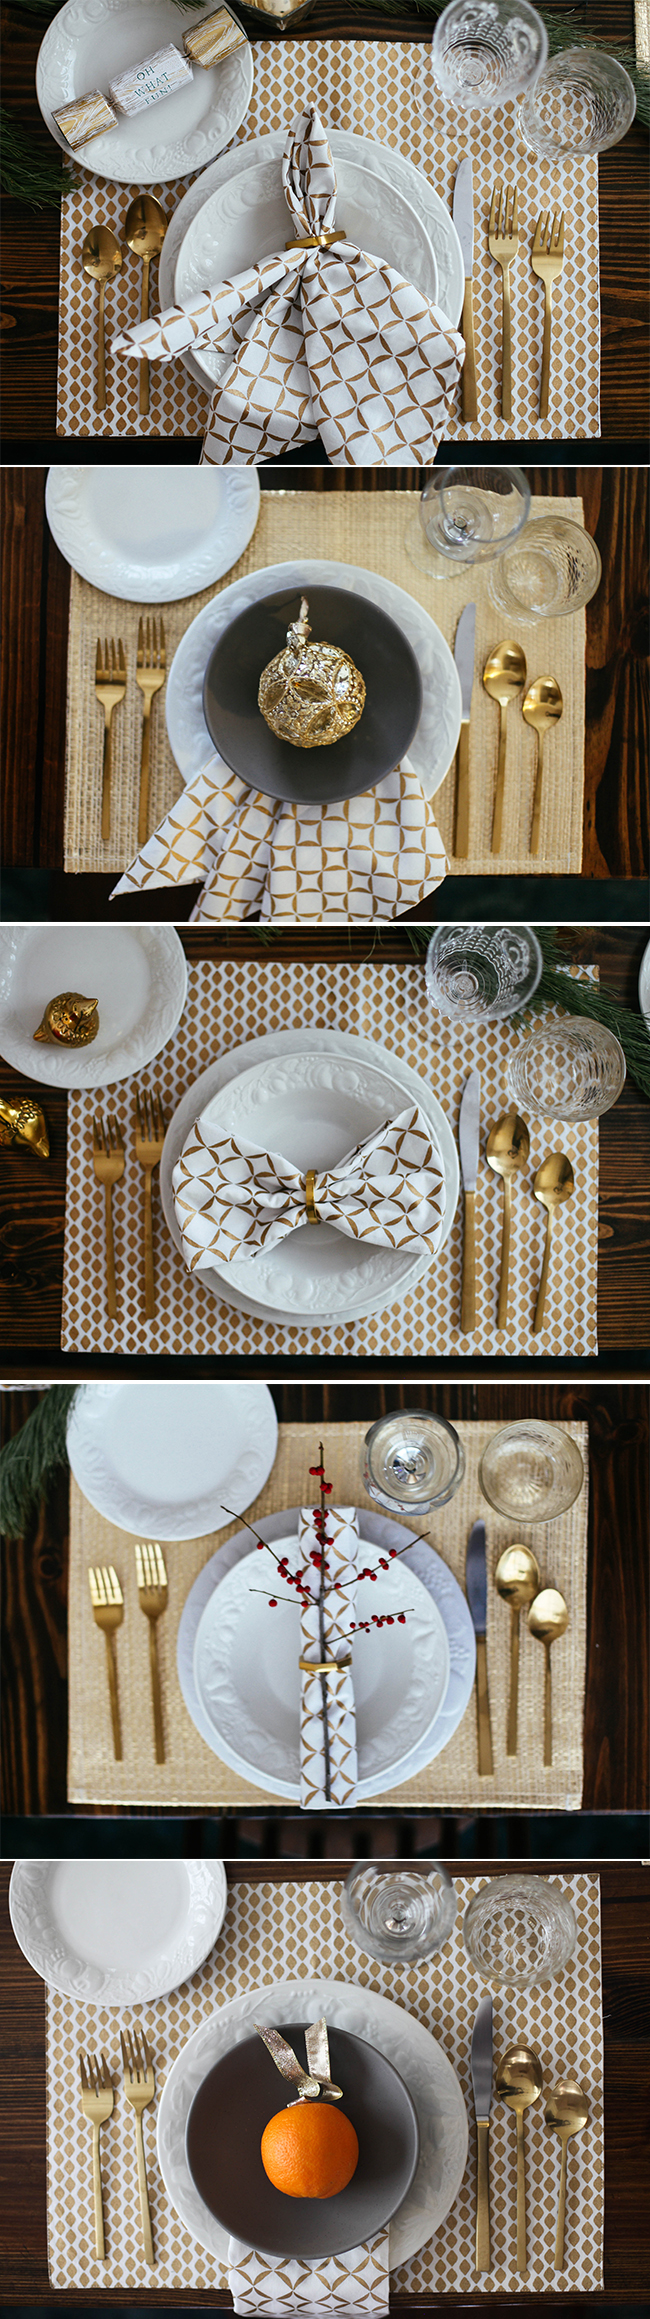 Christmas and new year table setting ideas in honor of Christmas place setting ideas